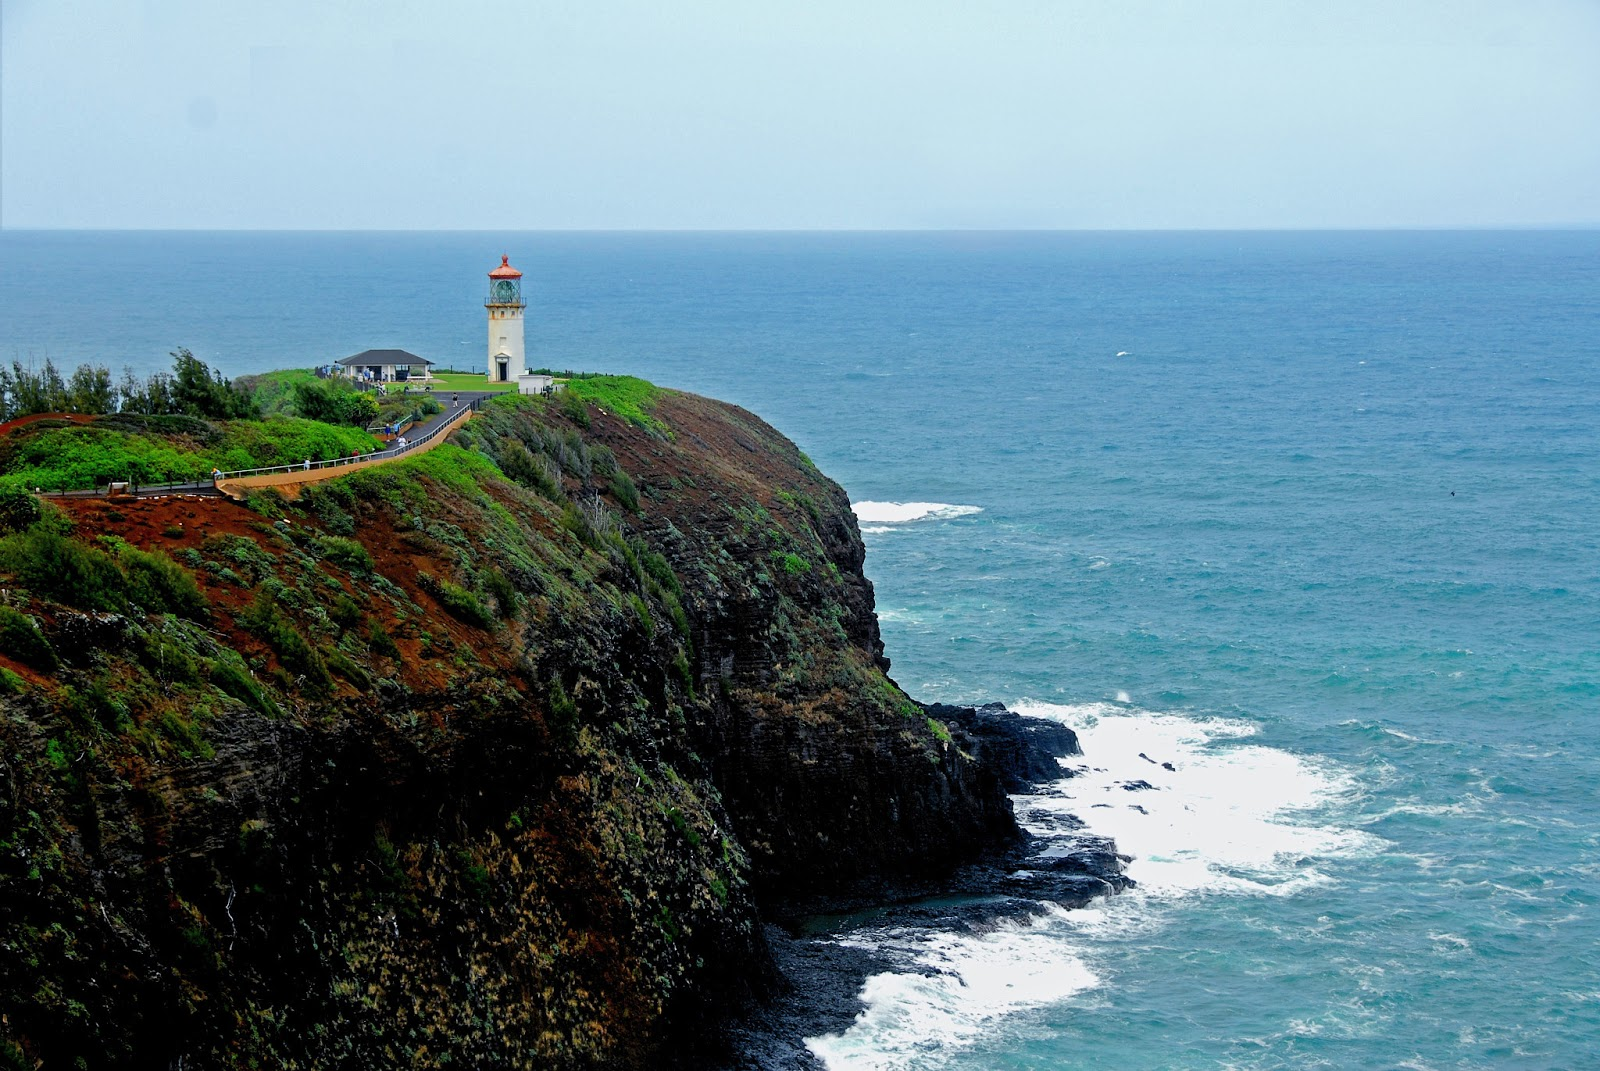 to rename the lighthouse is scheduled for May 4. Star-Advertiser